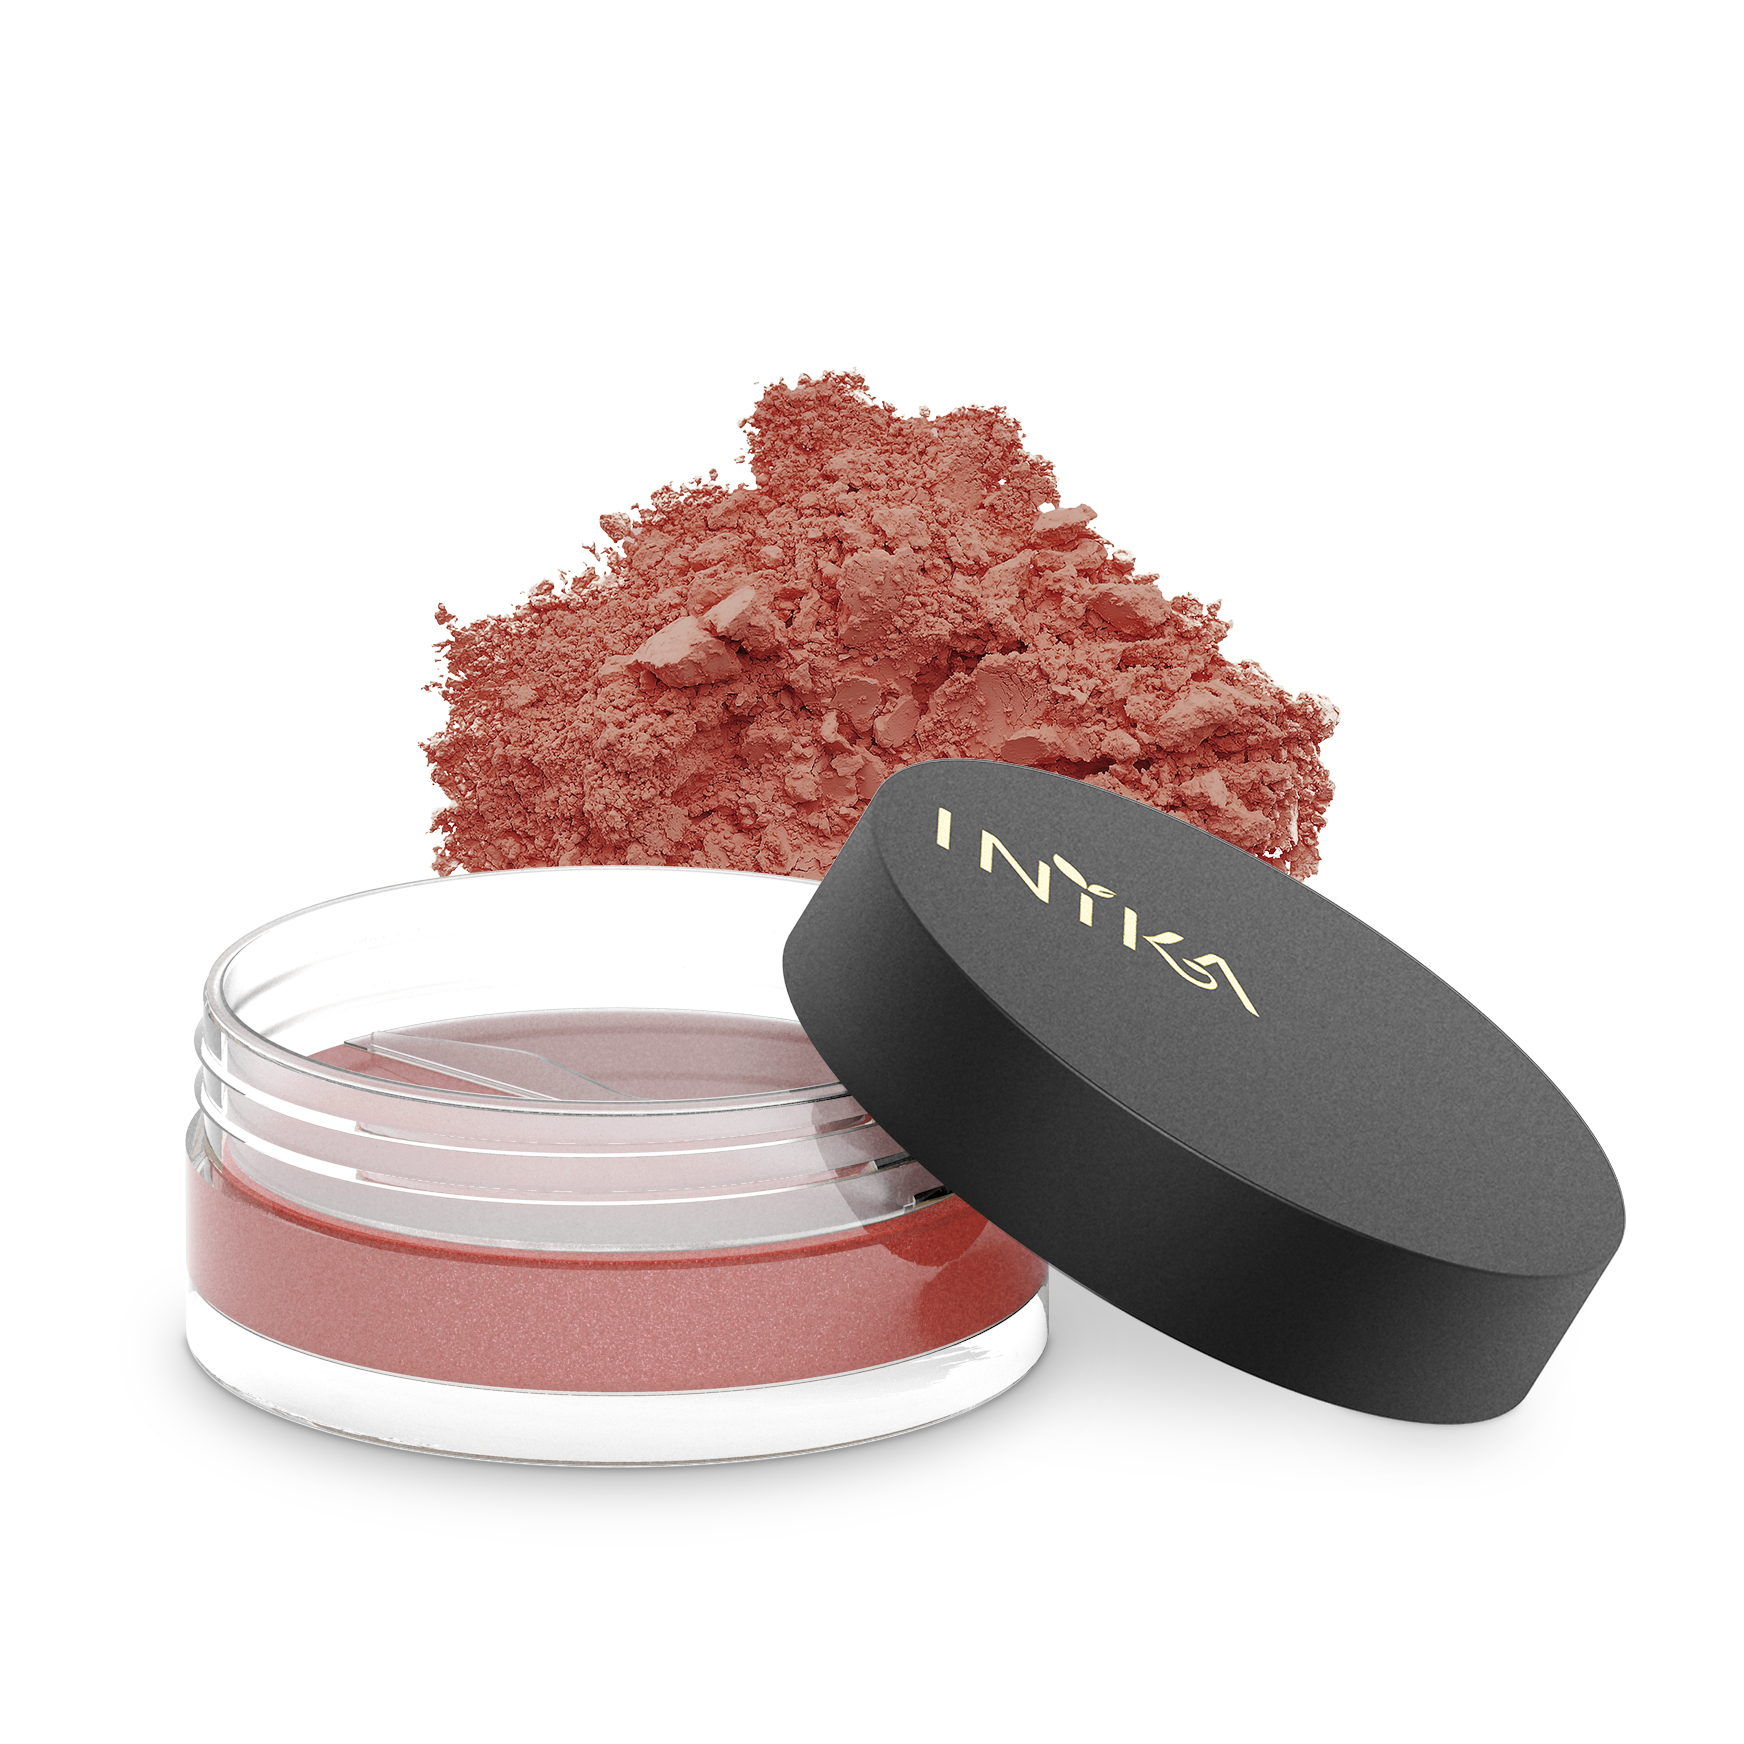 INIKA Loose Mineral Blush 3.5g Peachy Keen With Product